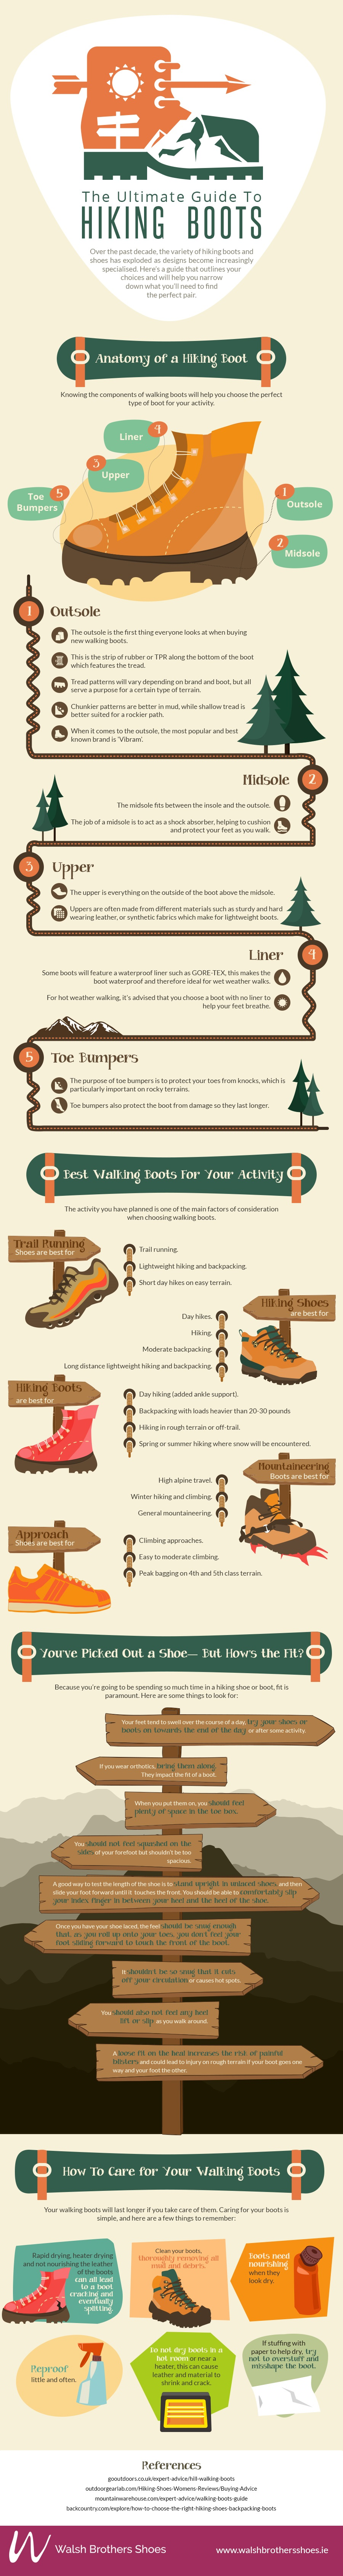 The Ultimate Guide to Hiking Boots-Infographic (3)